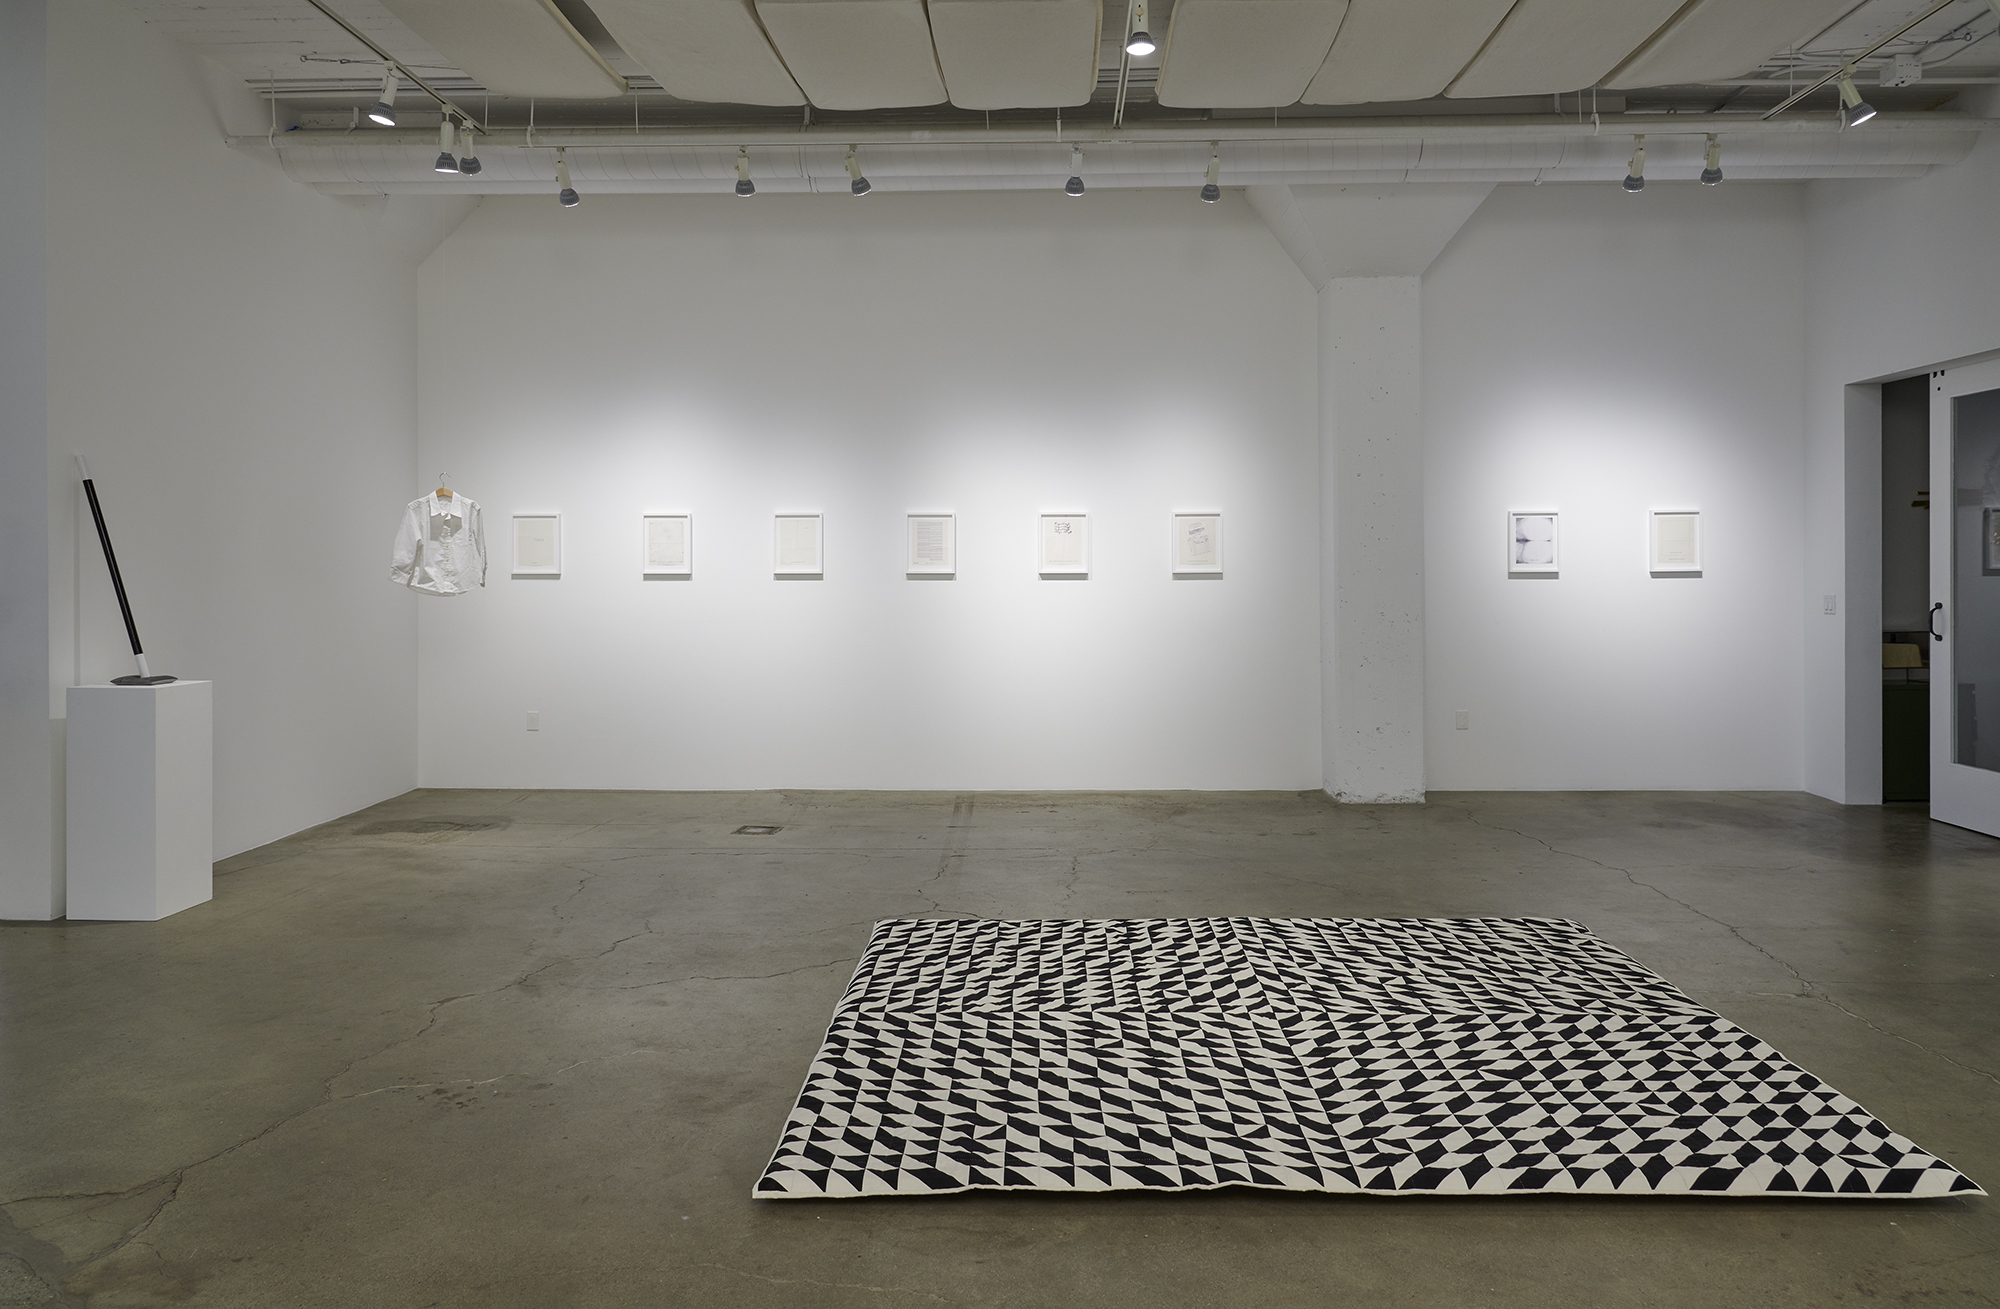 """Installation view of solo show """"Won, Too, Free, For"""", Catharine Clark Gallery, SF, April - May 2019"""